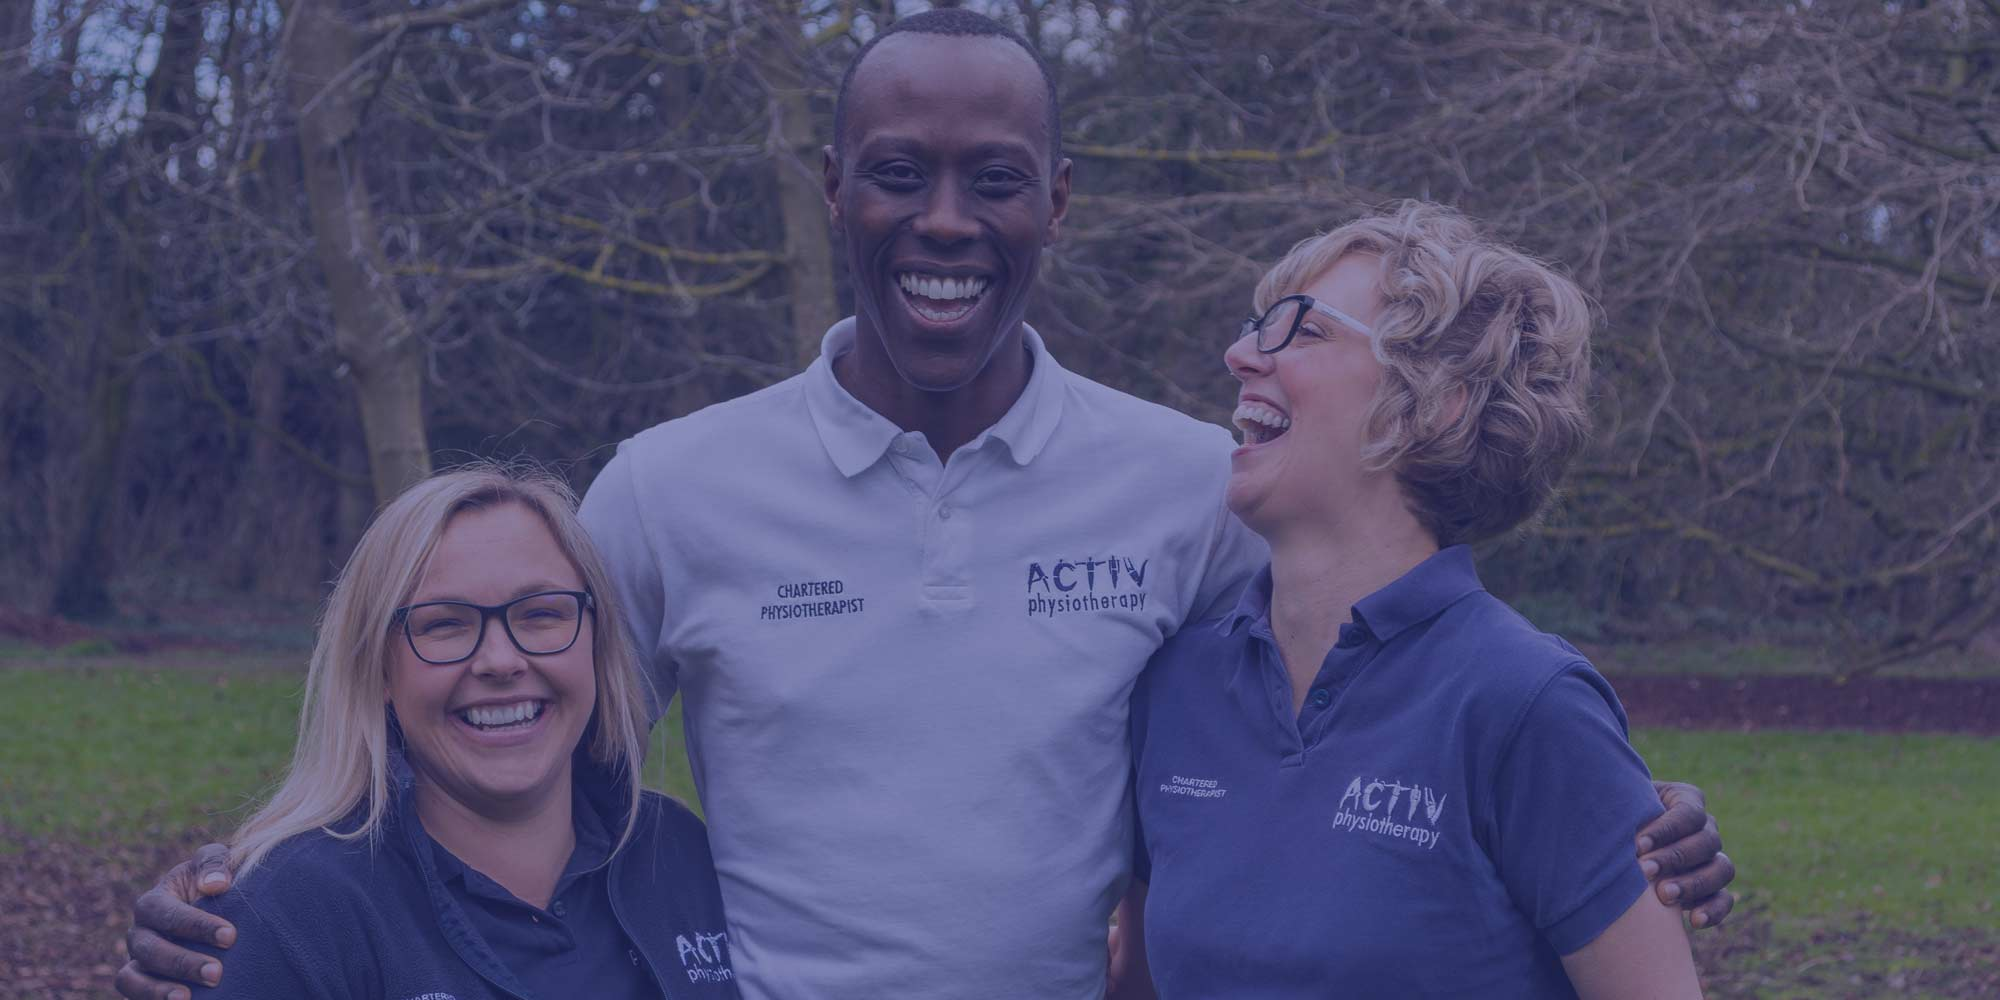 Meet Our Activ Physiotherapists